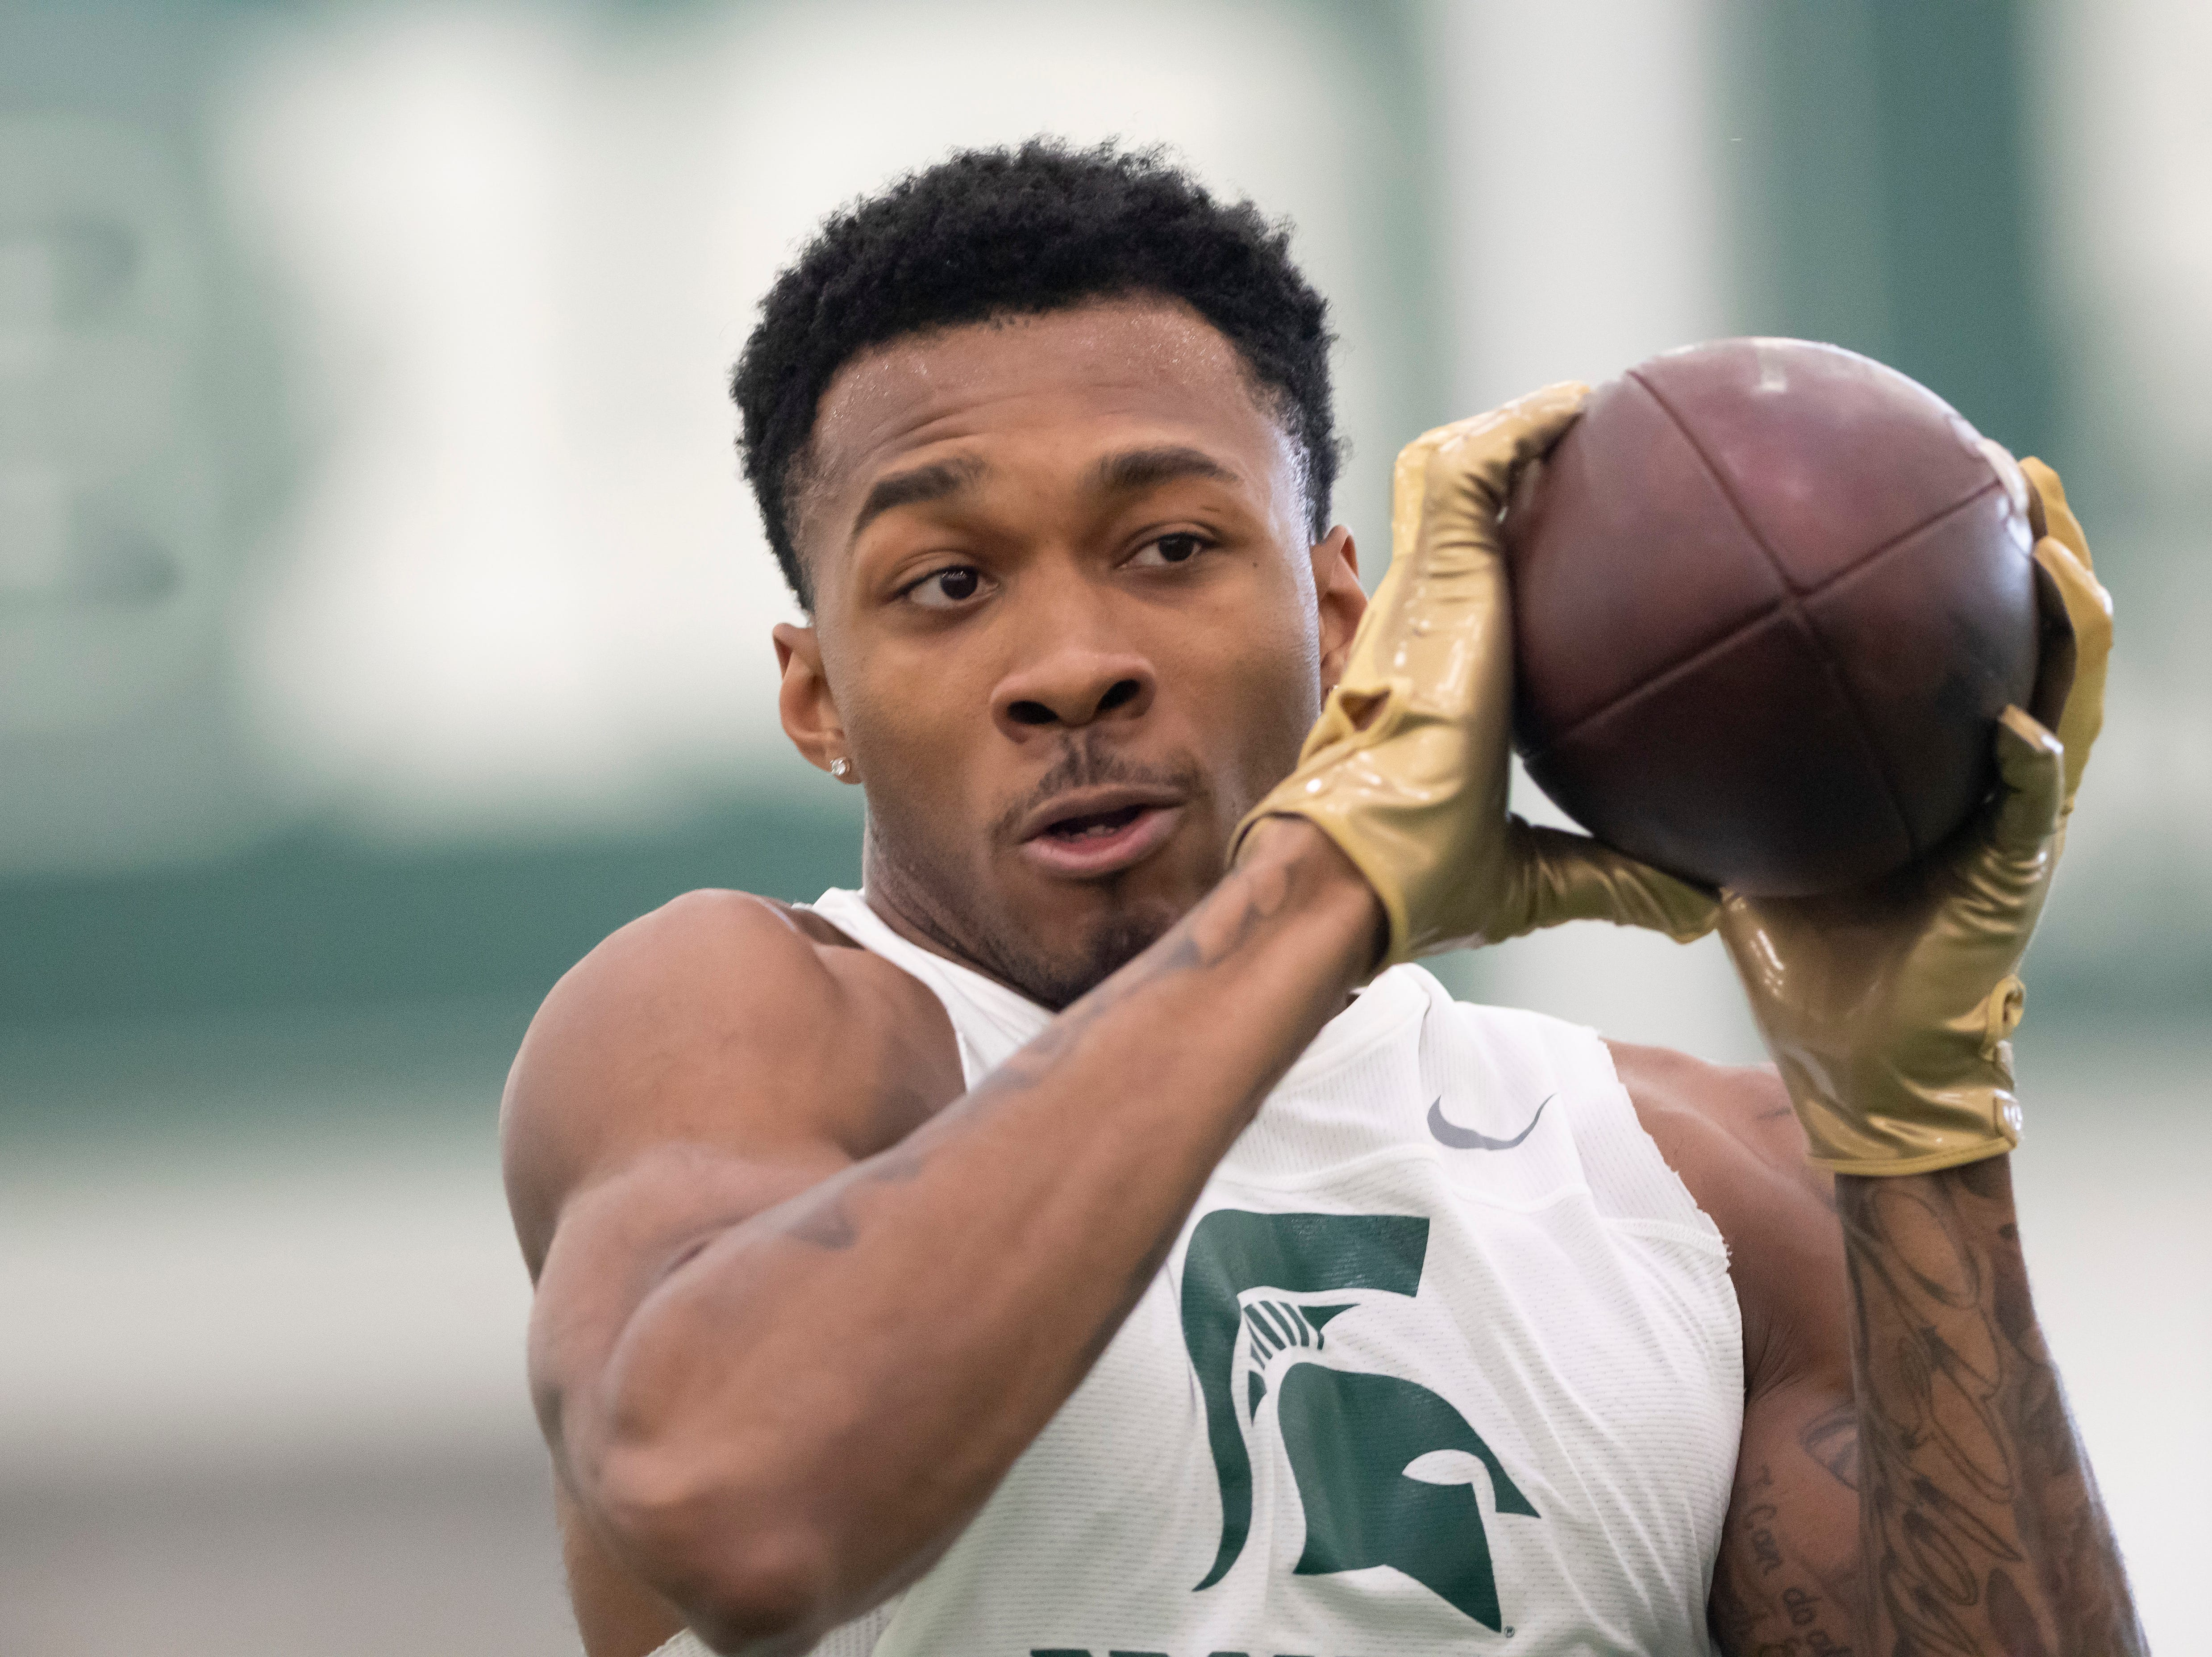 Michigan State cornerback Justin Layne catches a pass during an NFL pro day.